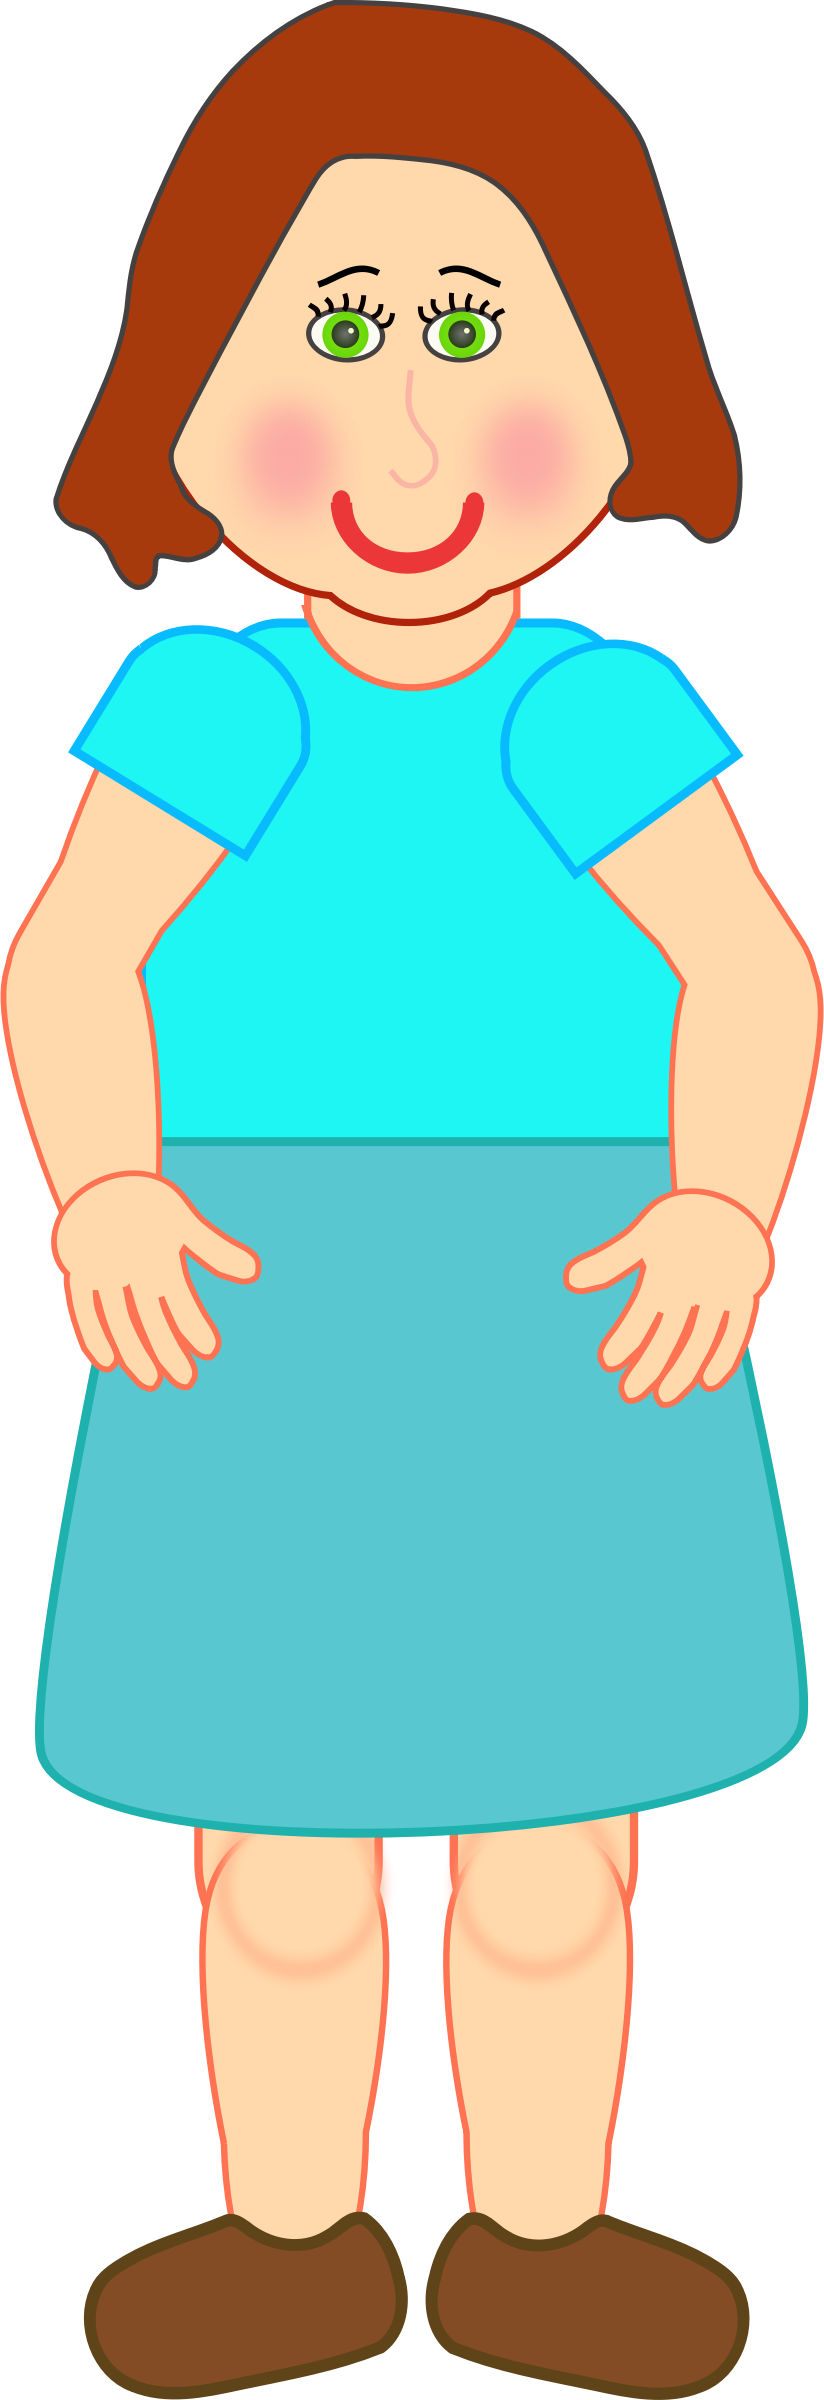 Female clipart standing. Woman big image png